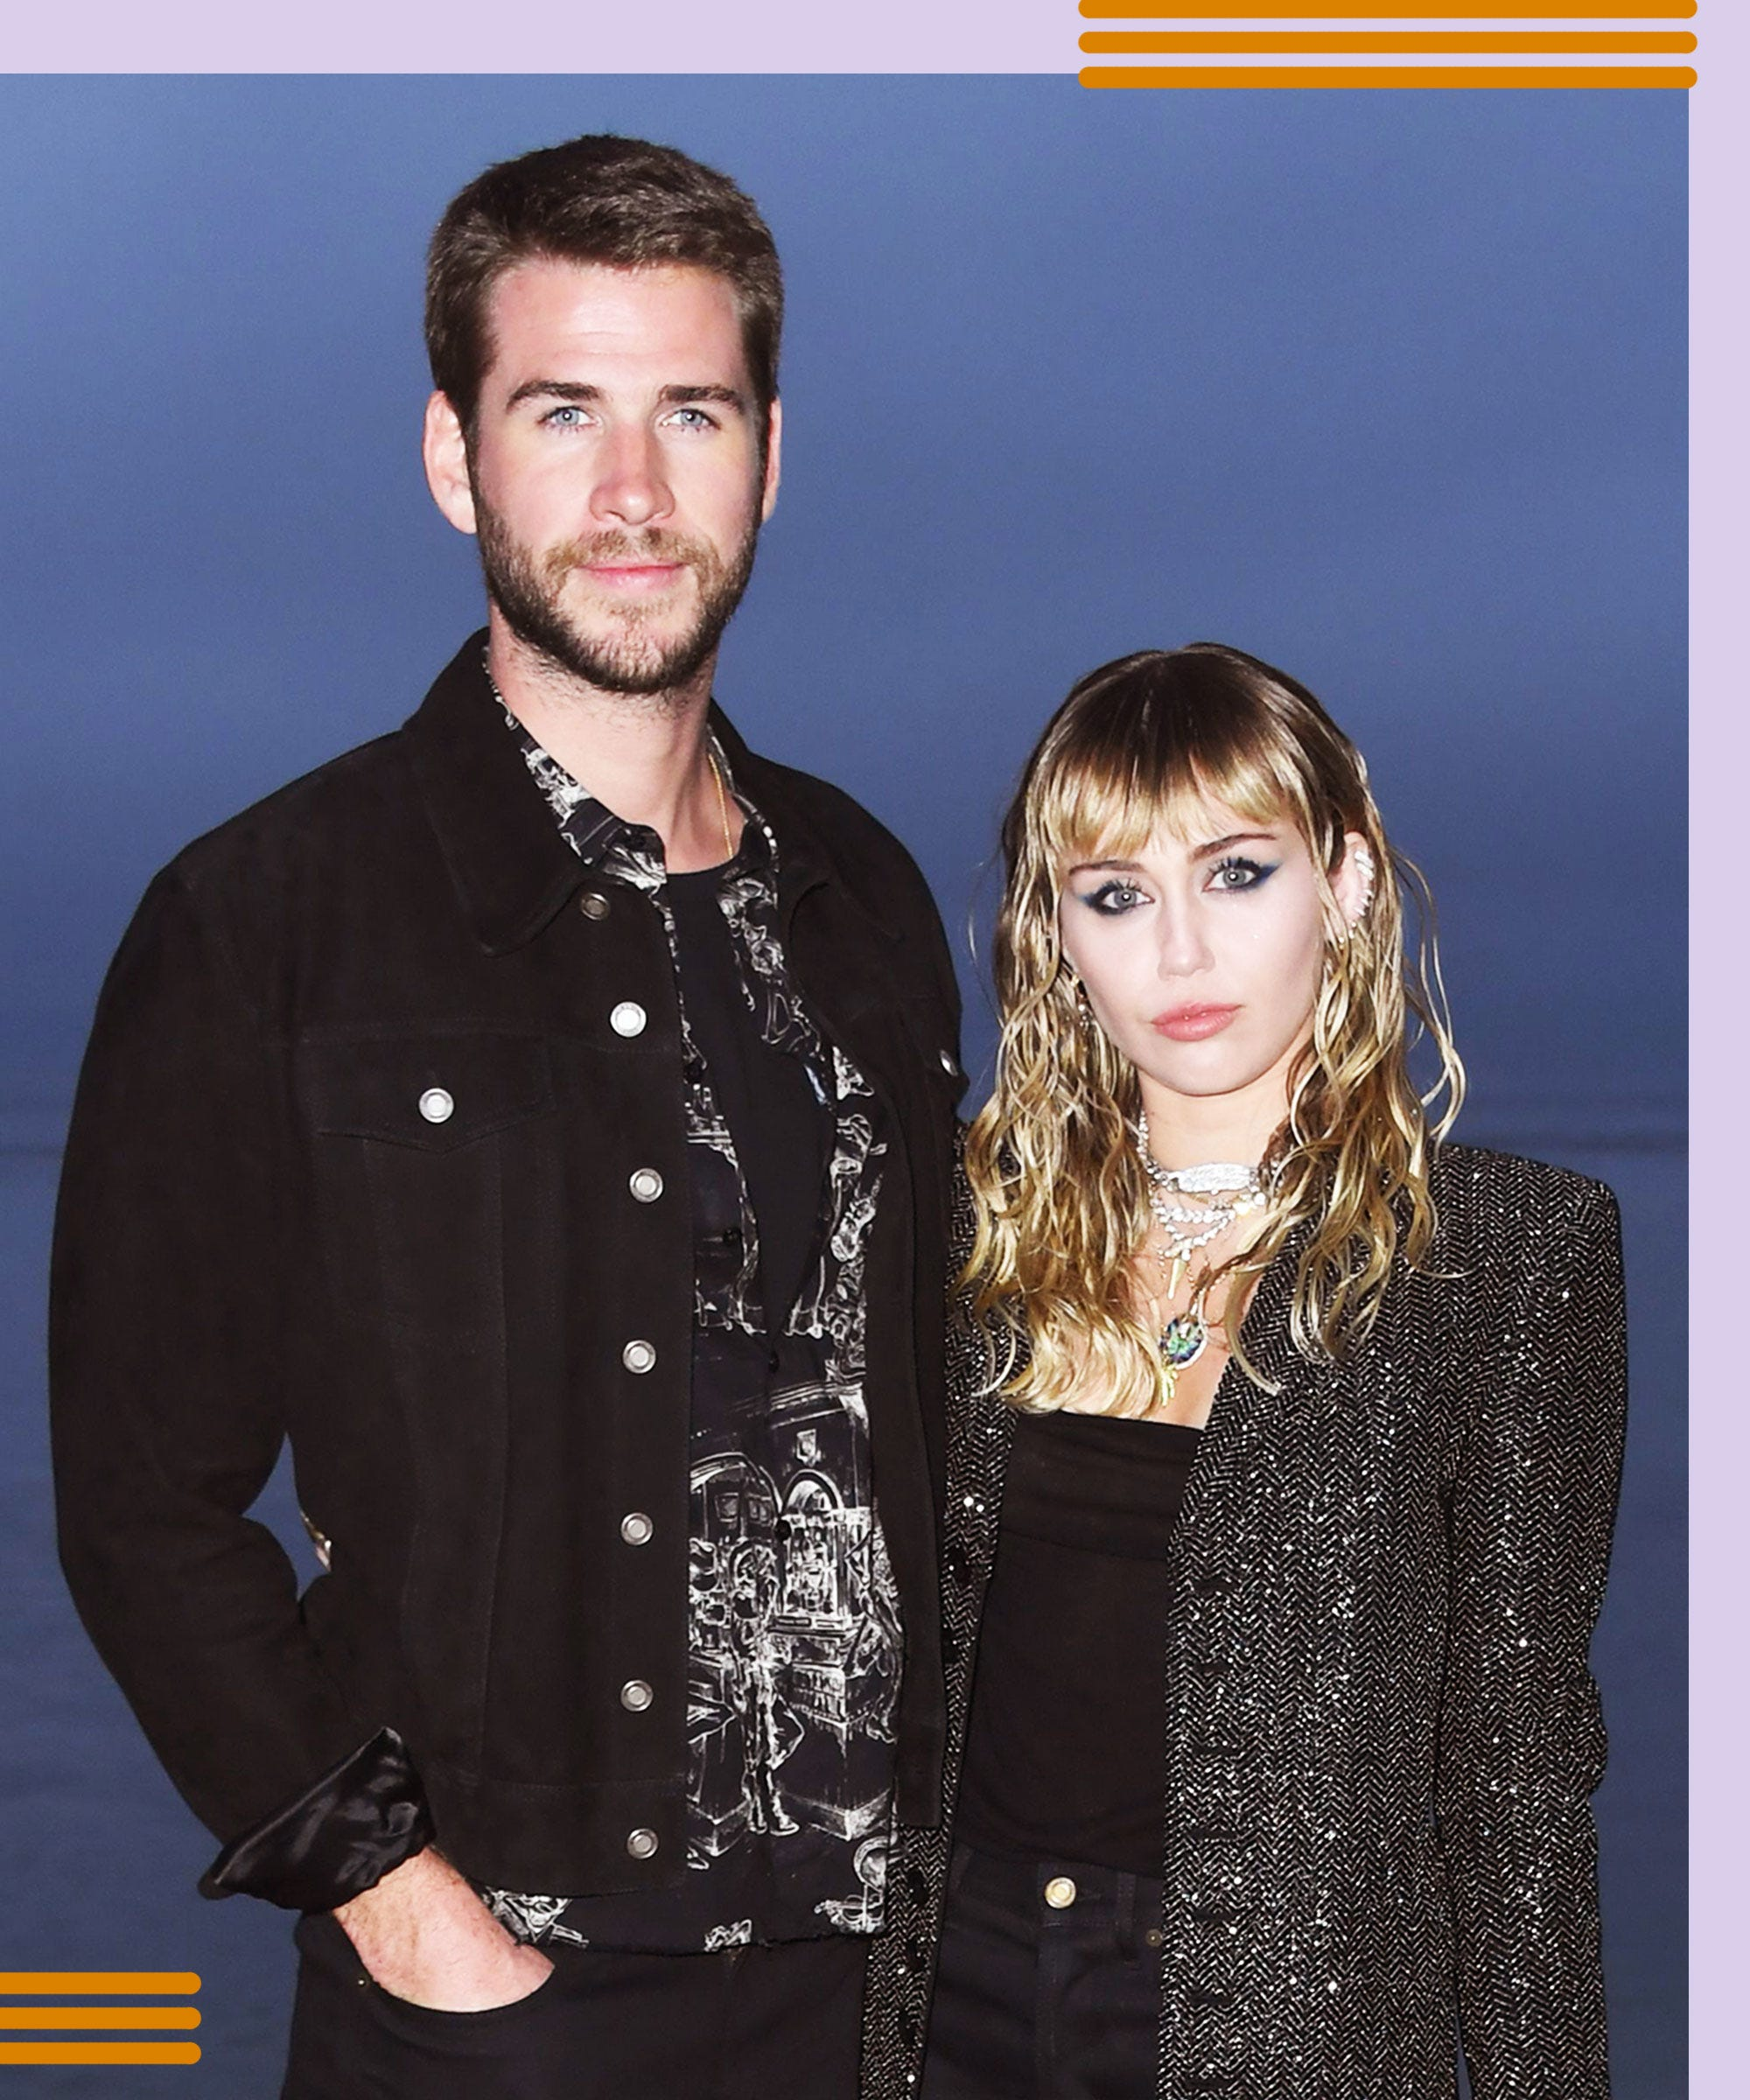 Liam Hemsworth Just Spoke Out About Miley Cyrus & Their Split